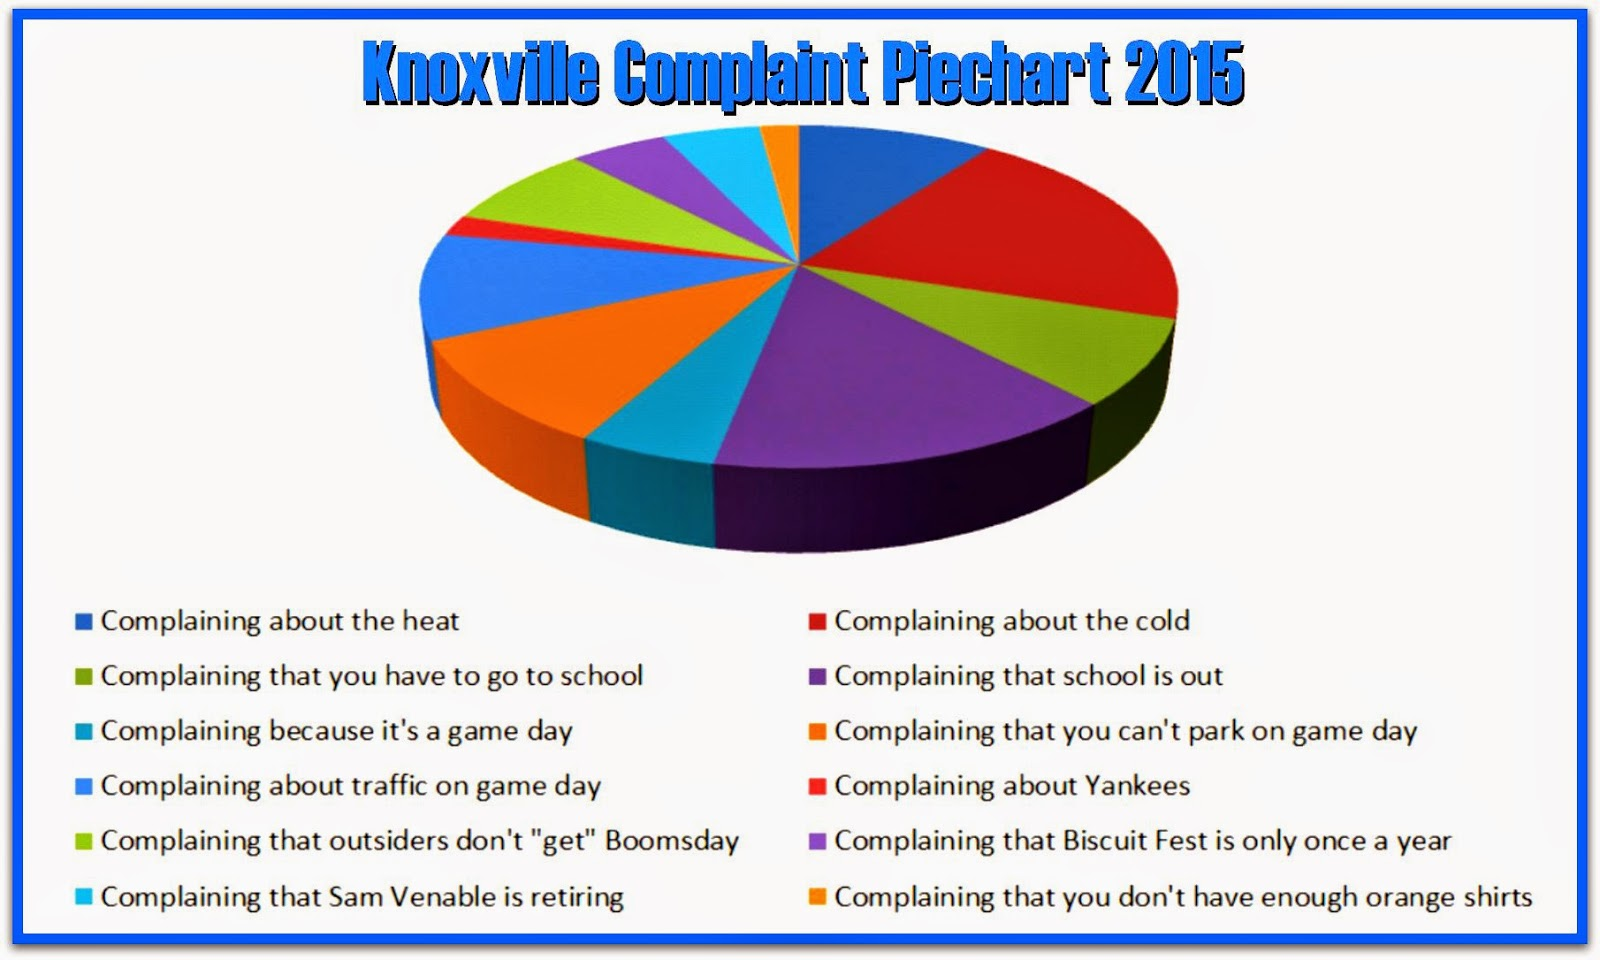 Cherdo on the flipside knoxville complaint piechart 2015 knoxville complaint piechart 2015 in the course of 24 hours mother nature has toyed with us again this afternoon it was a pleasant 73 degrees geenschuldenfo Image collections